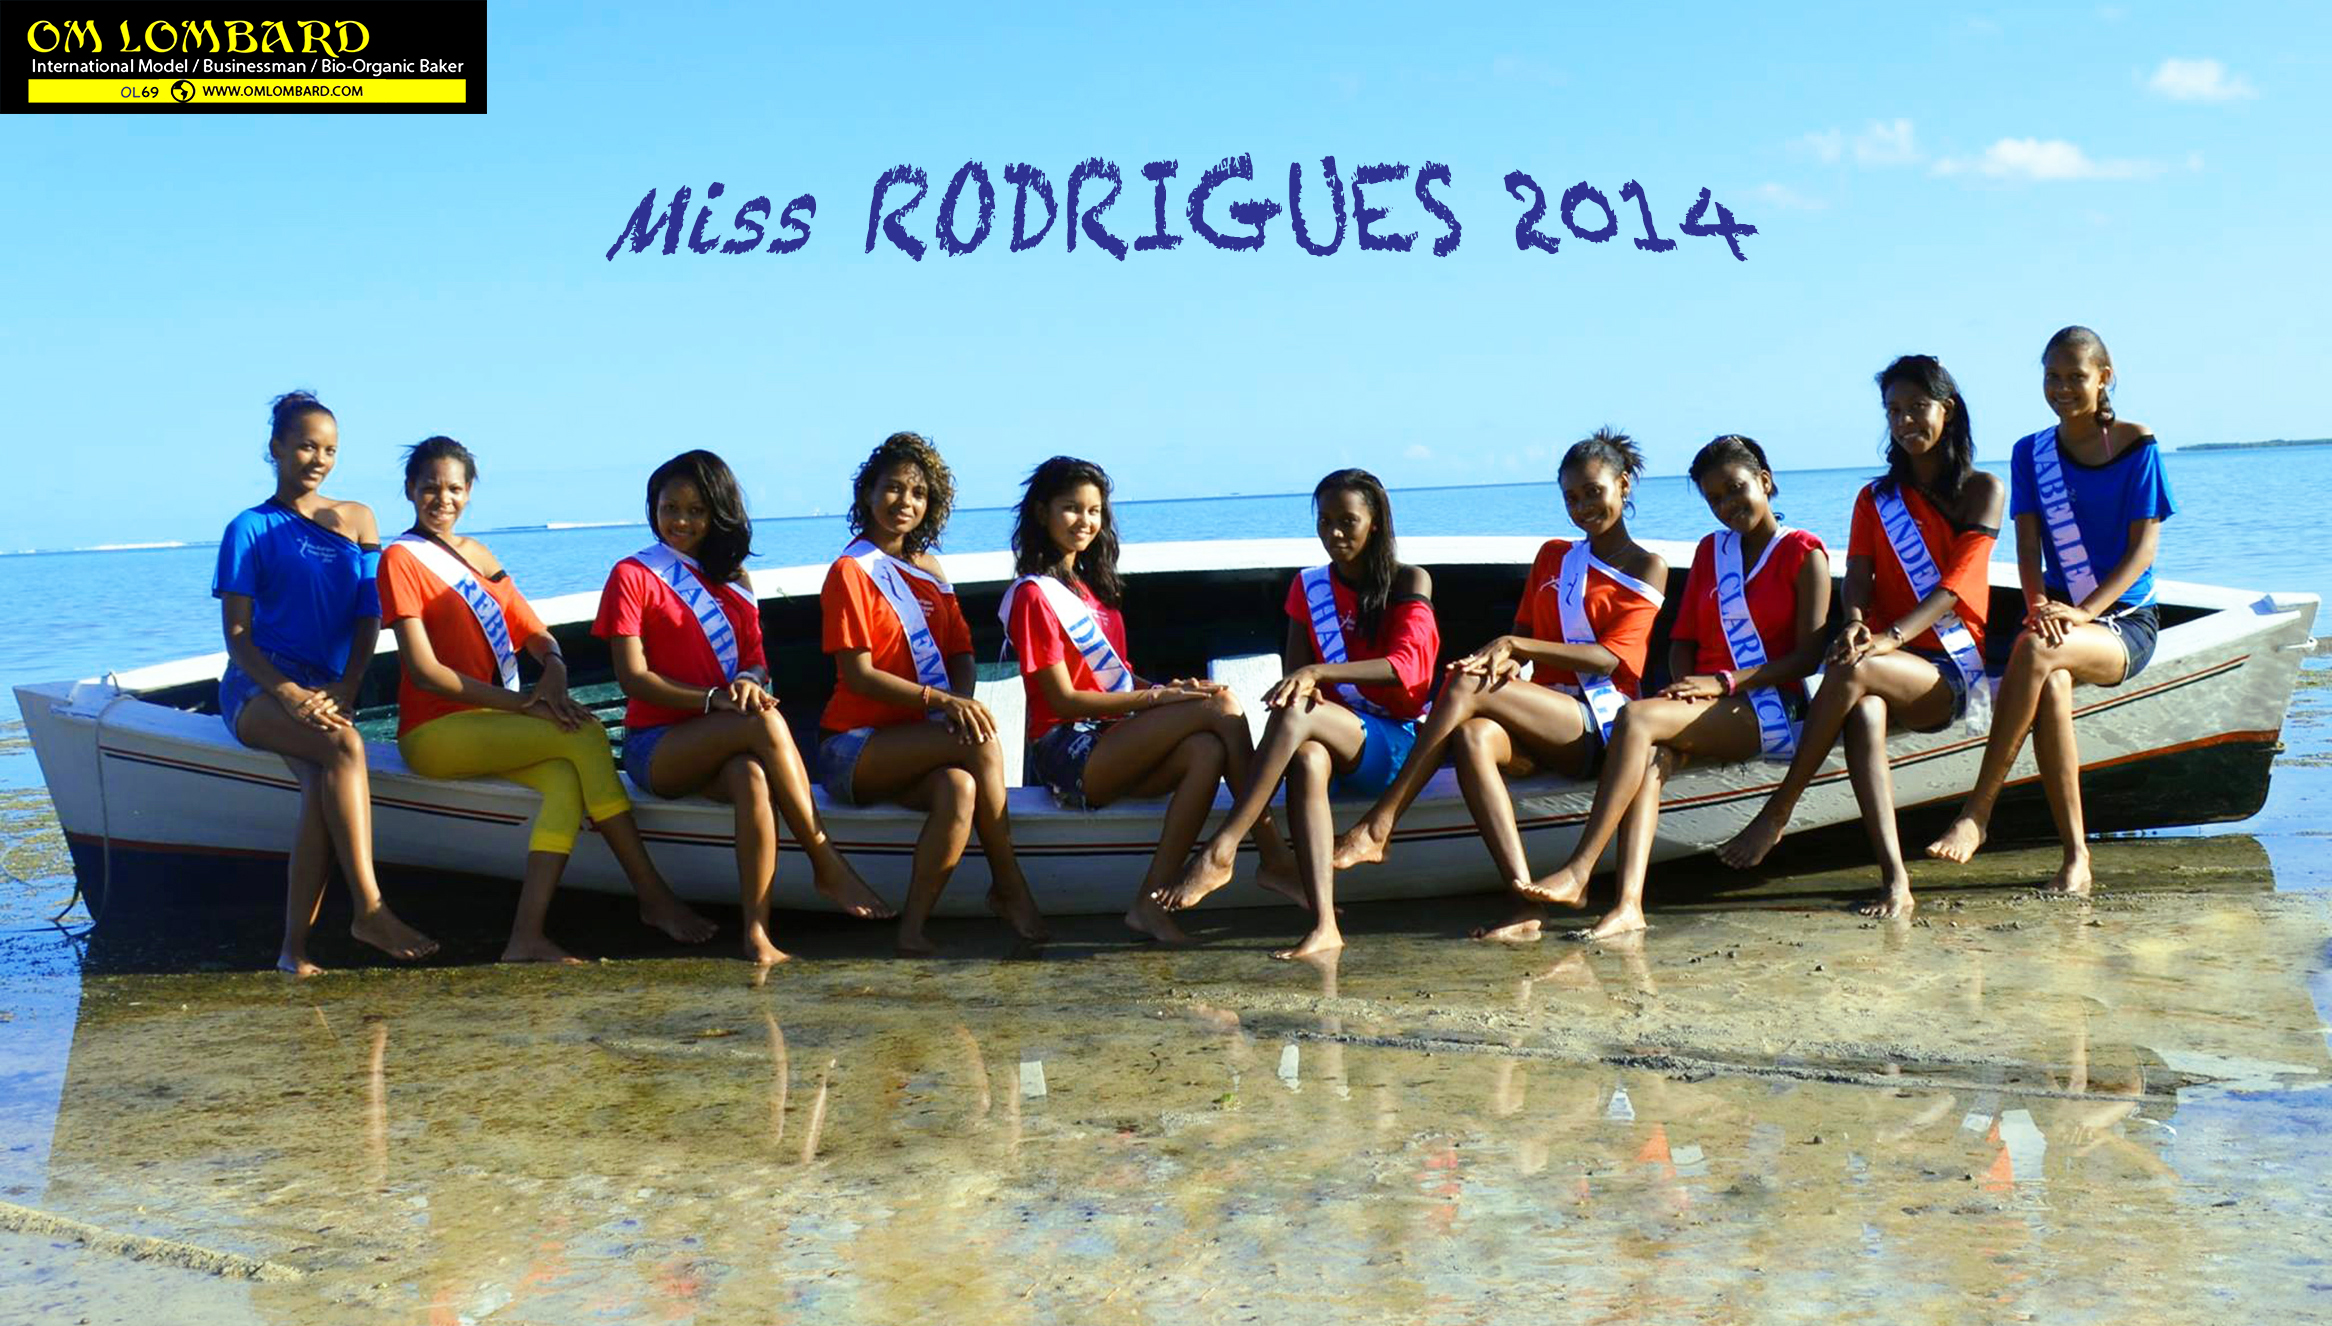 """Om LOMBARD for Week-End Mauritius : """"Om LOMBARD encadre les Miss"""" – Miss RODRIGUES 2014 – 10/5/2014 MAURITIUS"""